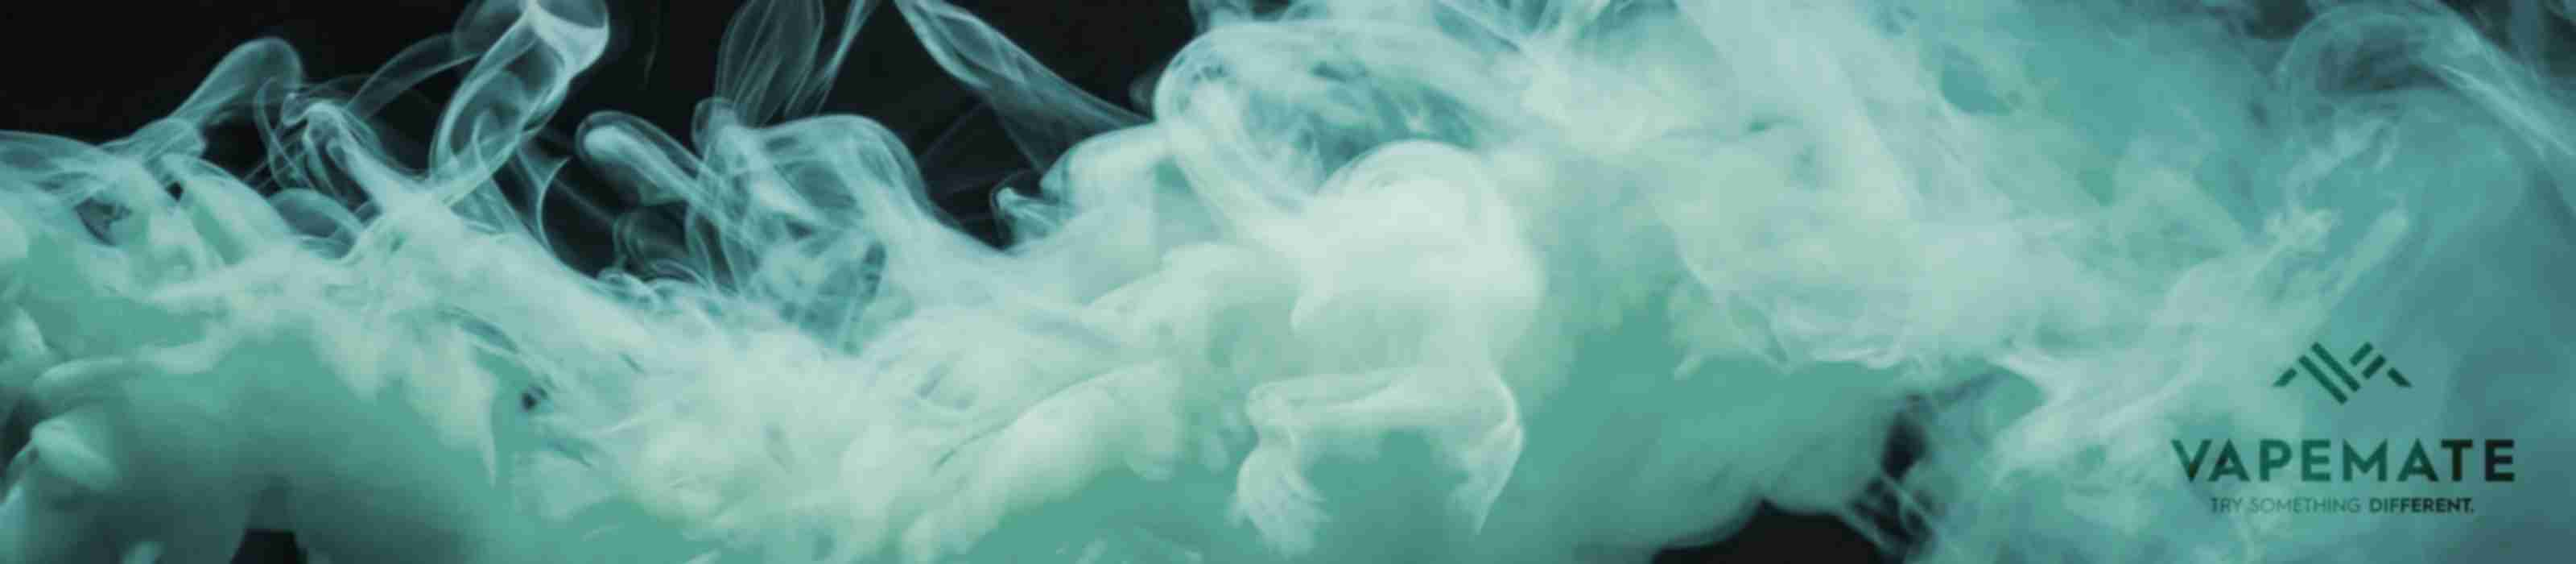 Vaping Laws and Regulations in the UK [2019]